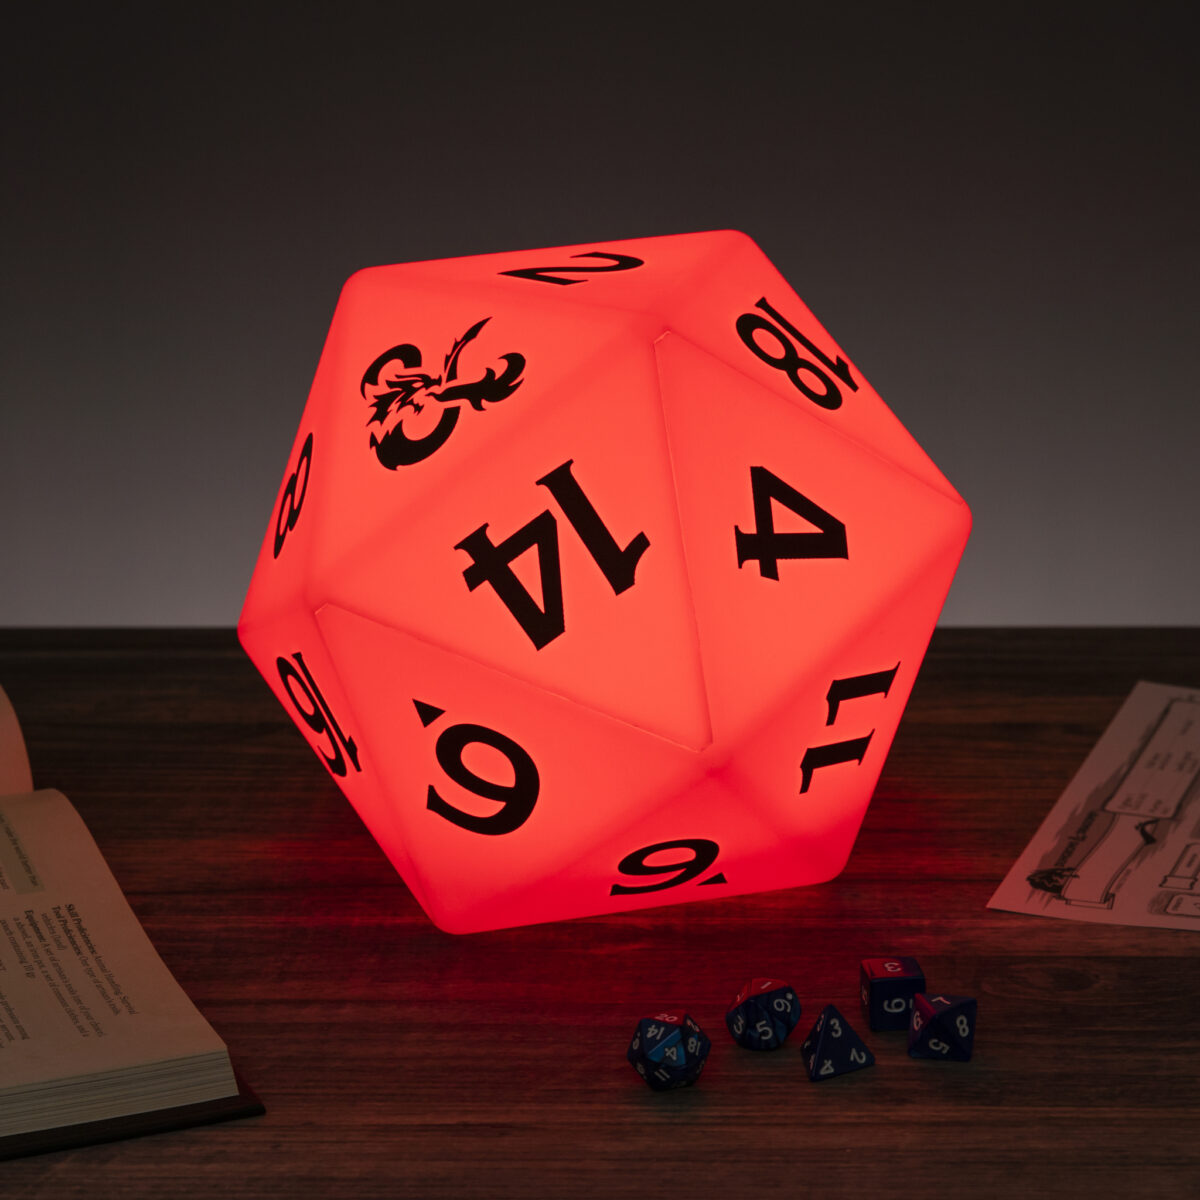 A D&D color-changing light shaped like a D20